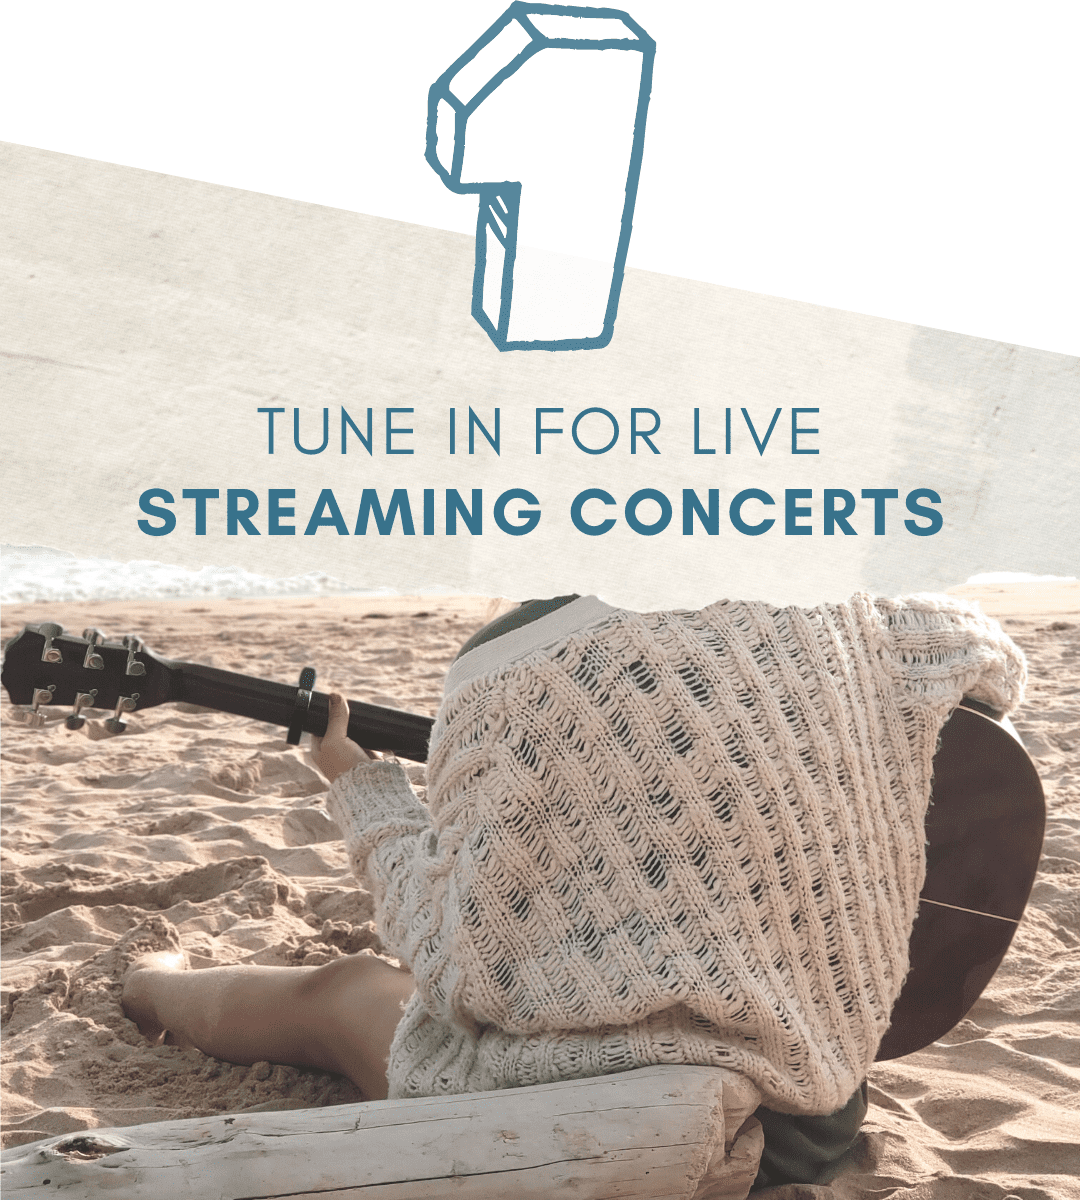 tune in for live streaming concerts